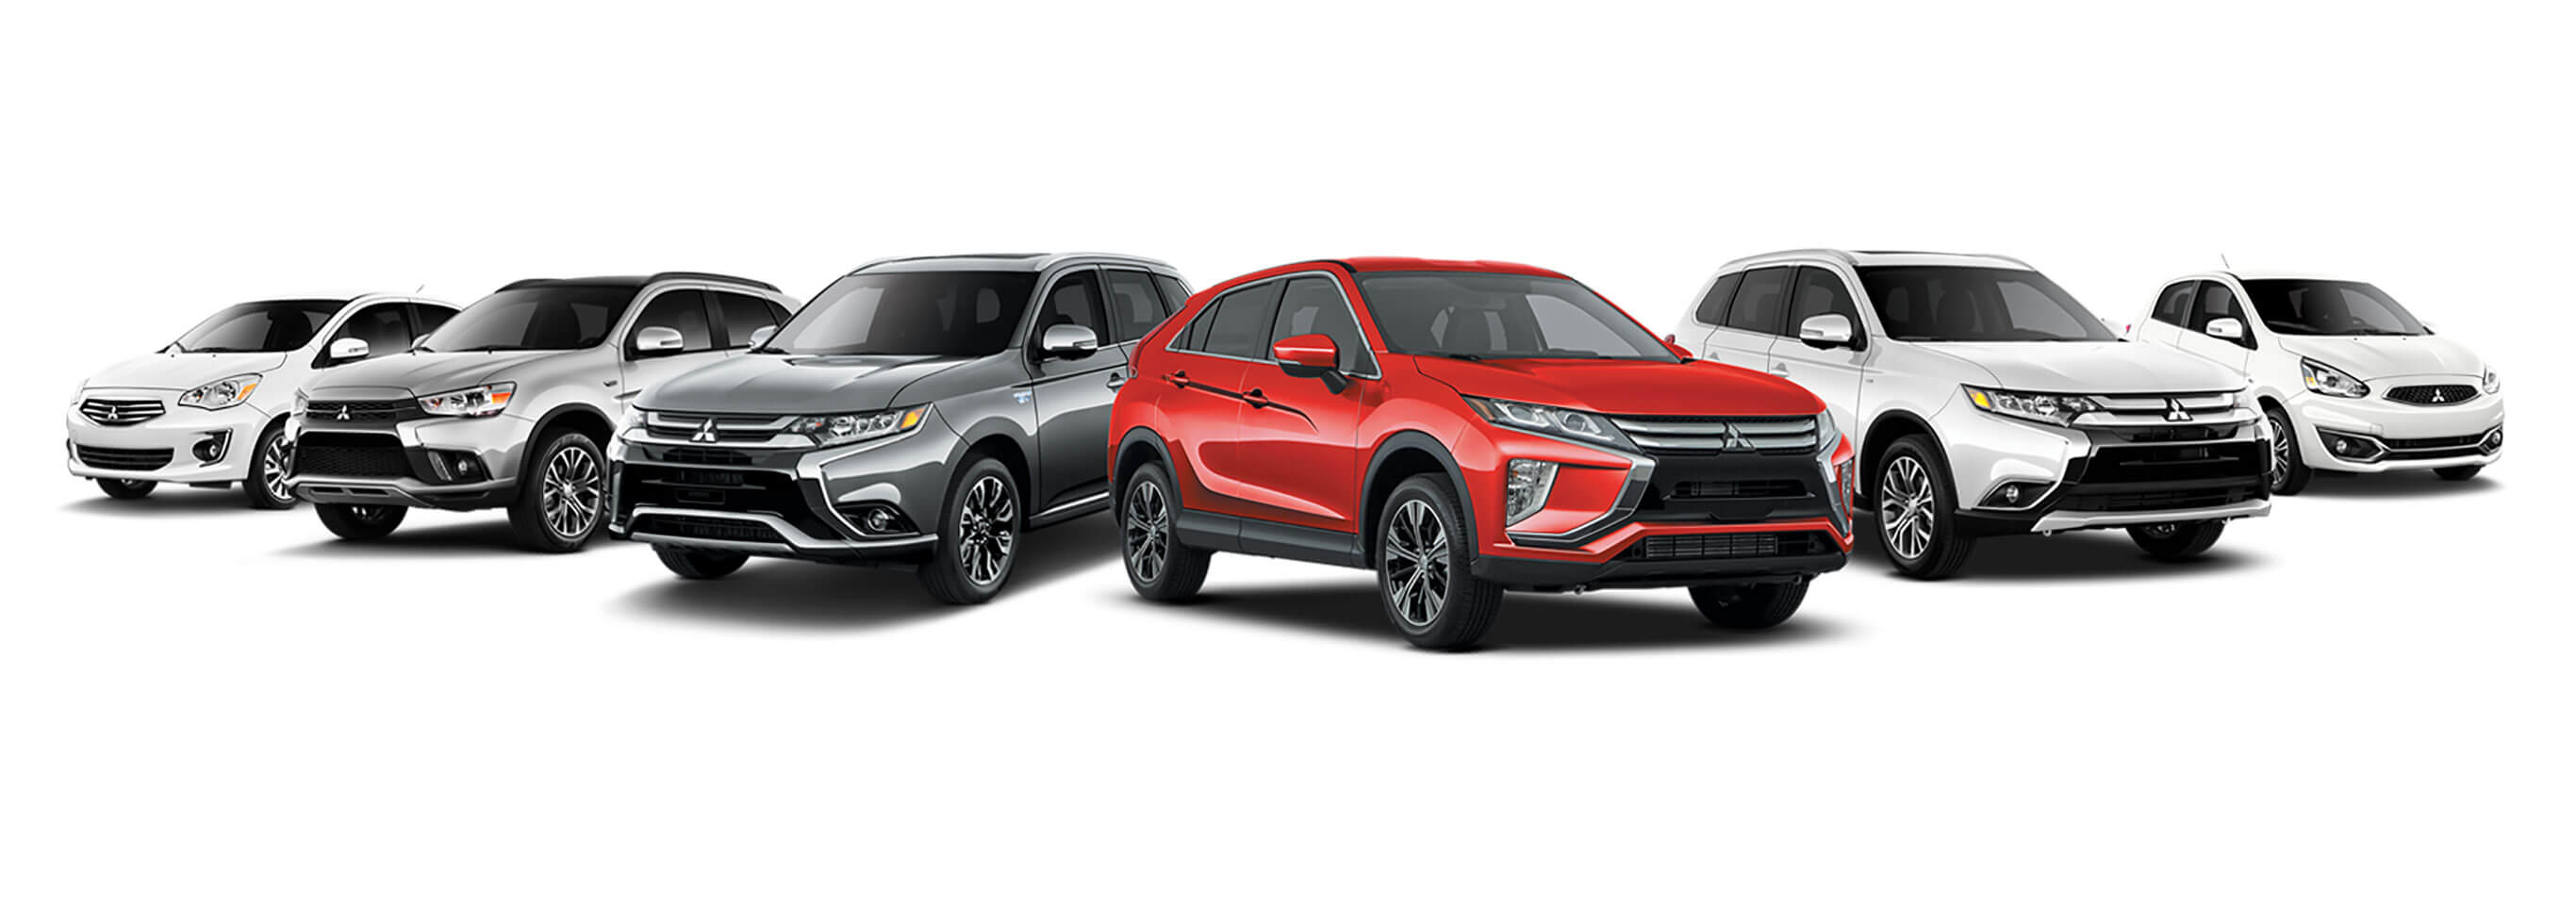 Rebates & Incentives, Rouge Valley Mitsubishi, Scarborough, Ontario